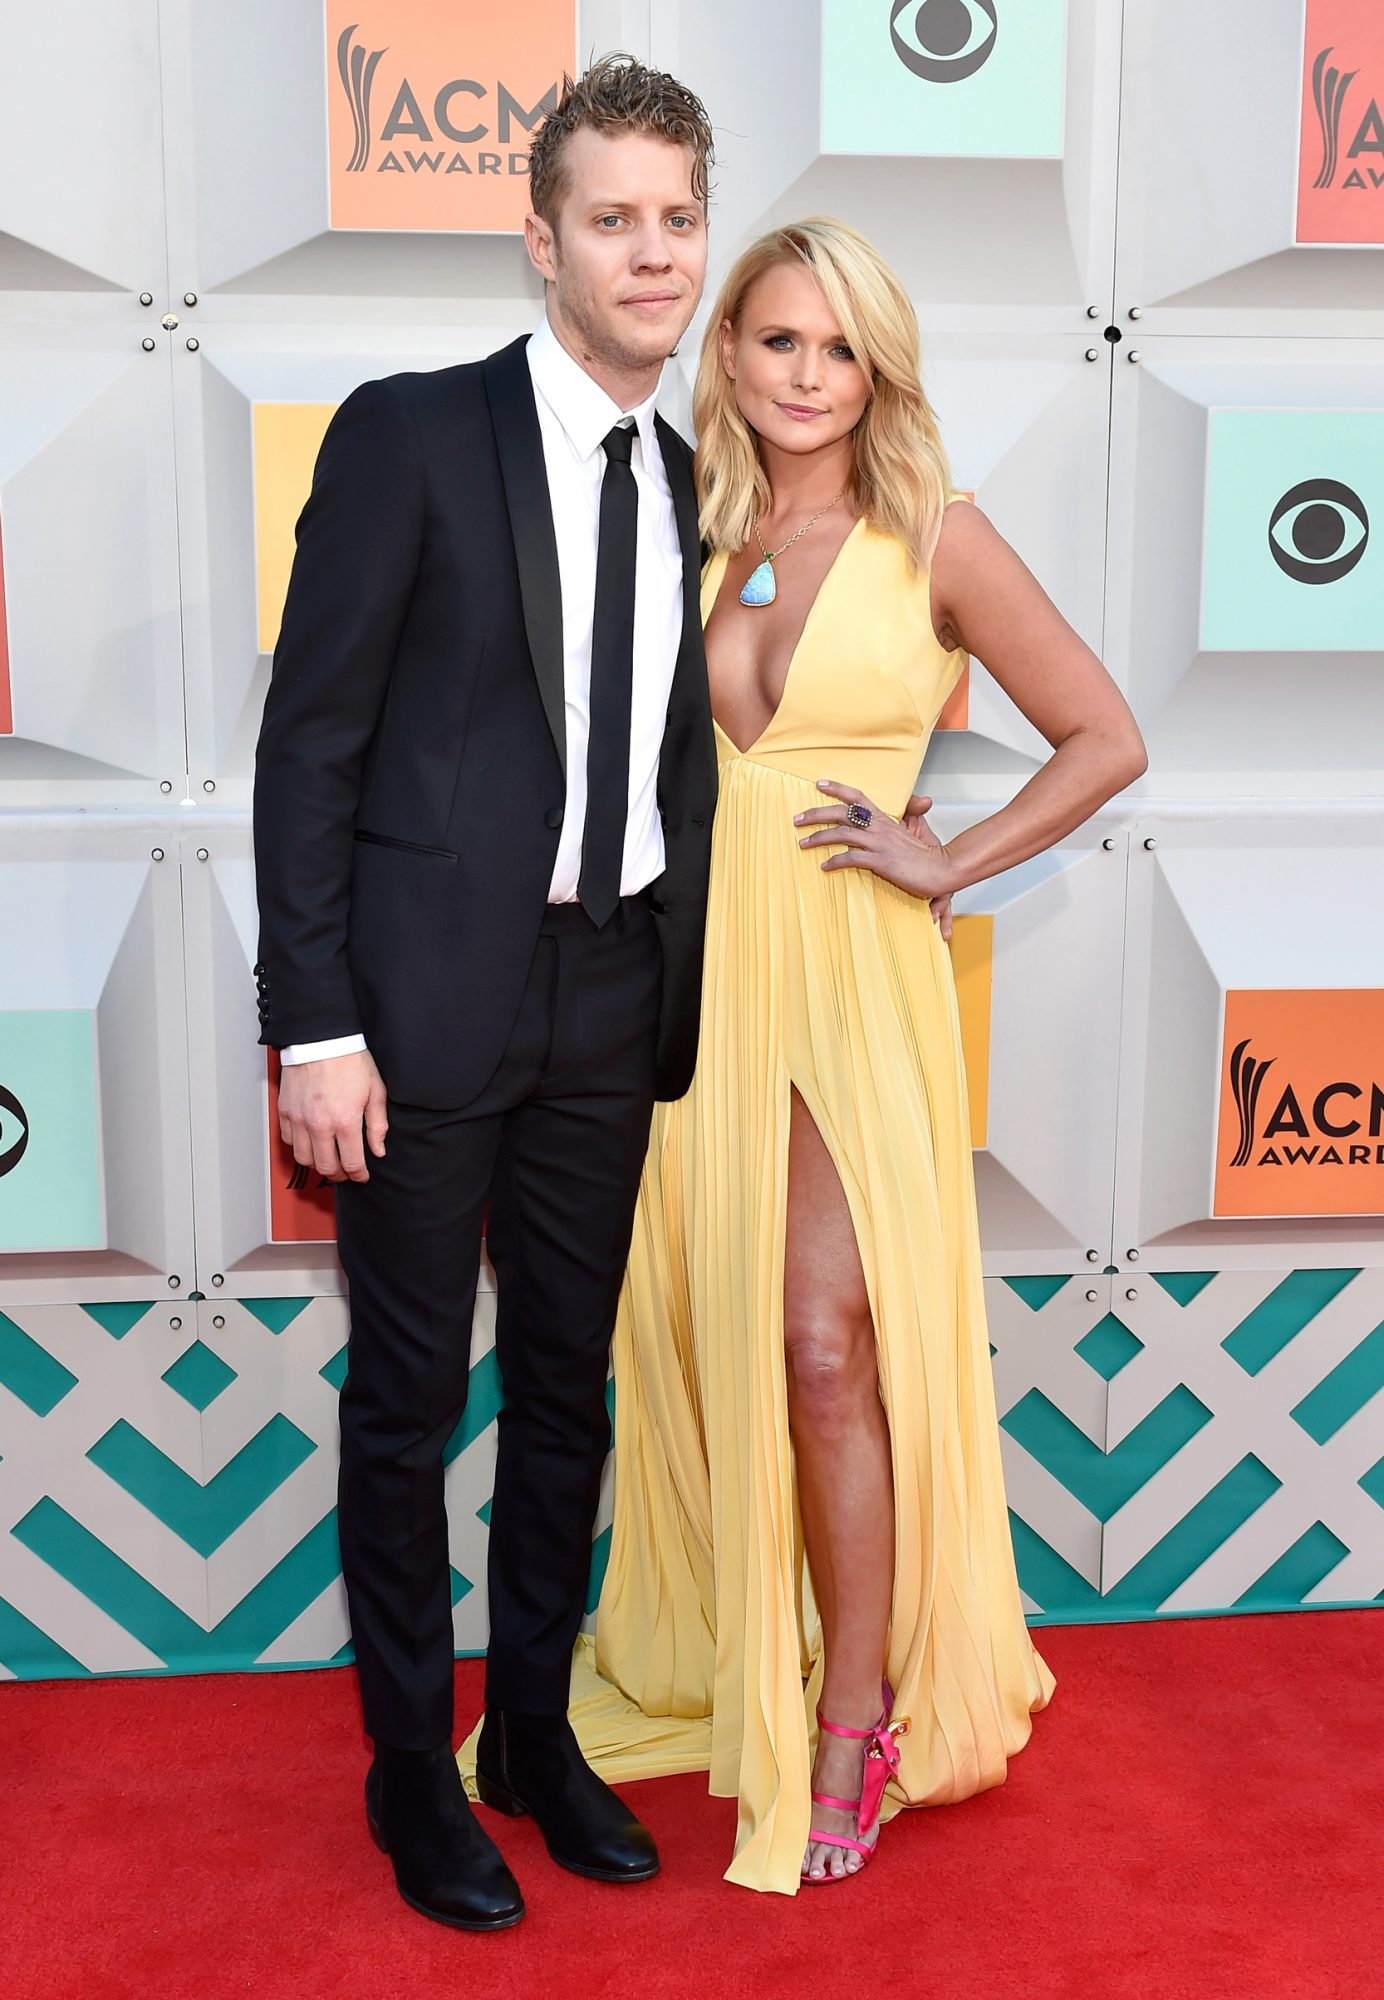 Miranda Lambert and Anderson East Make Their Red Carpet Couple Debut at the ACM Awards